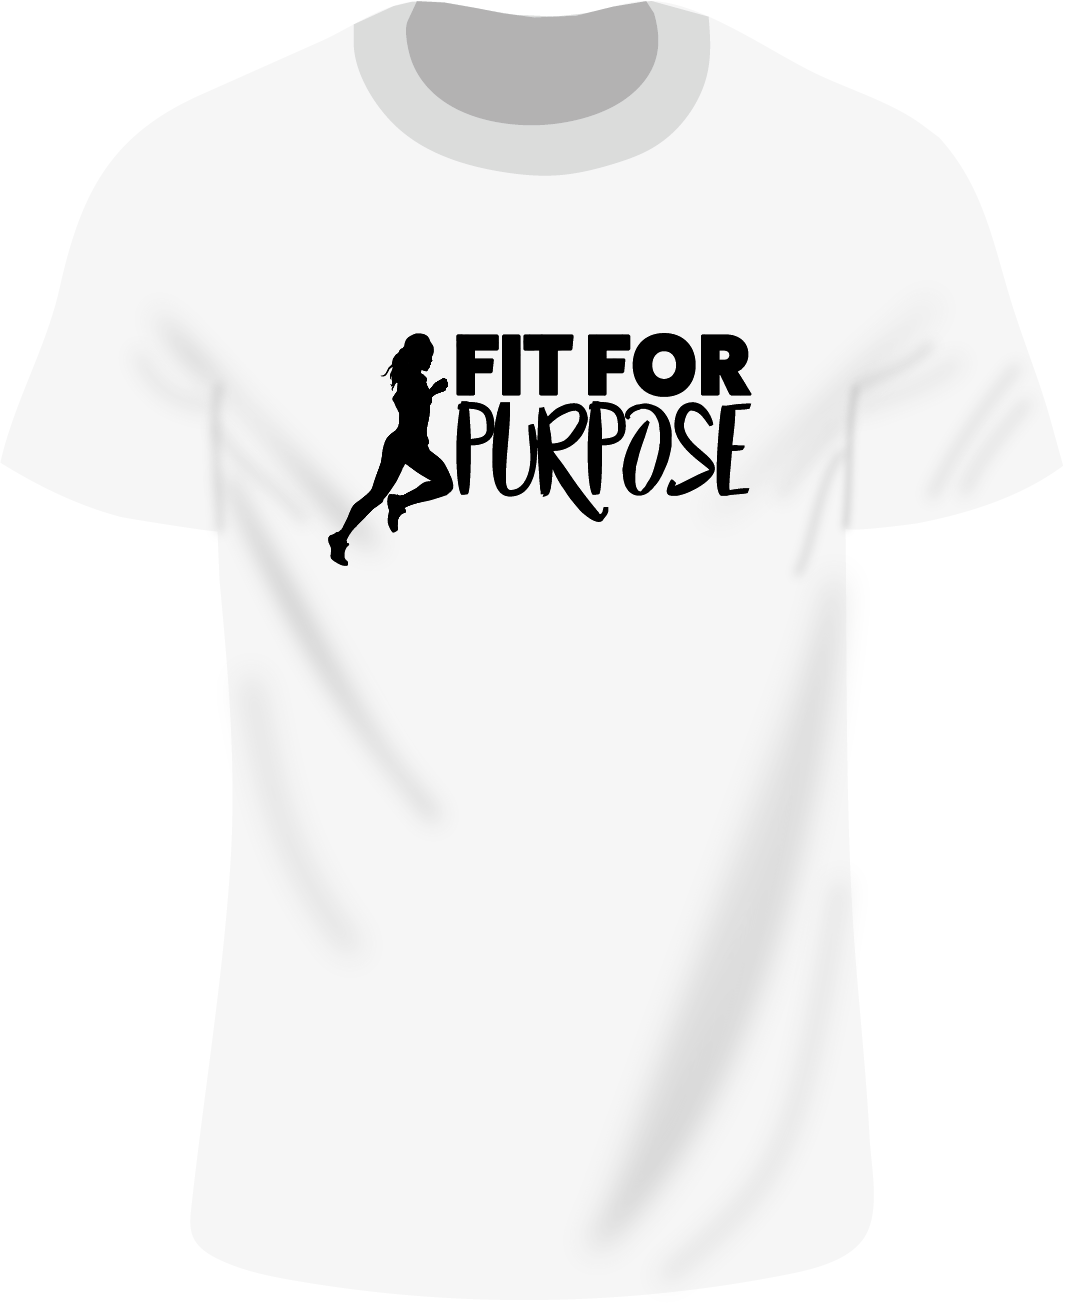 Out Now – Our own T-Shirts and Hoodies. Designed & Printed by A.F.5 Design & Print ltd. Scarborough.